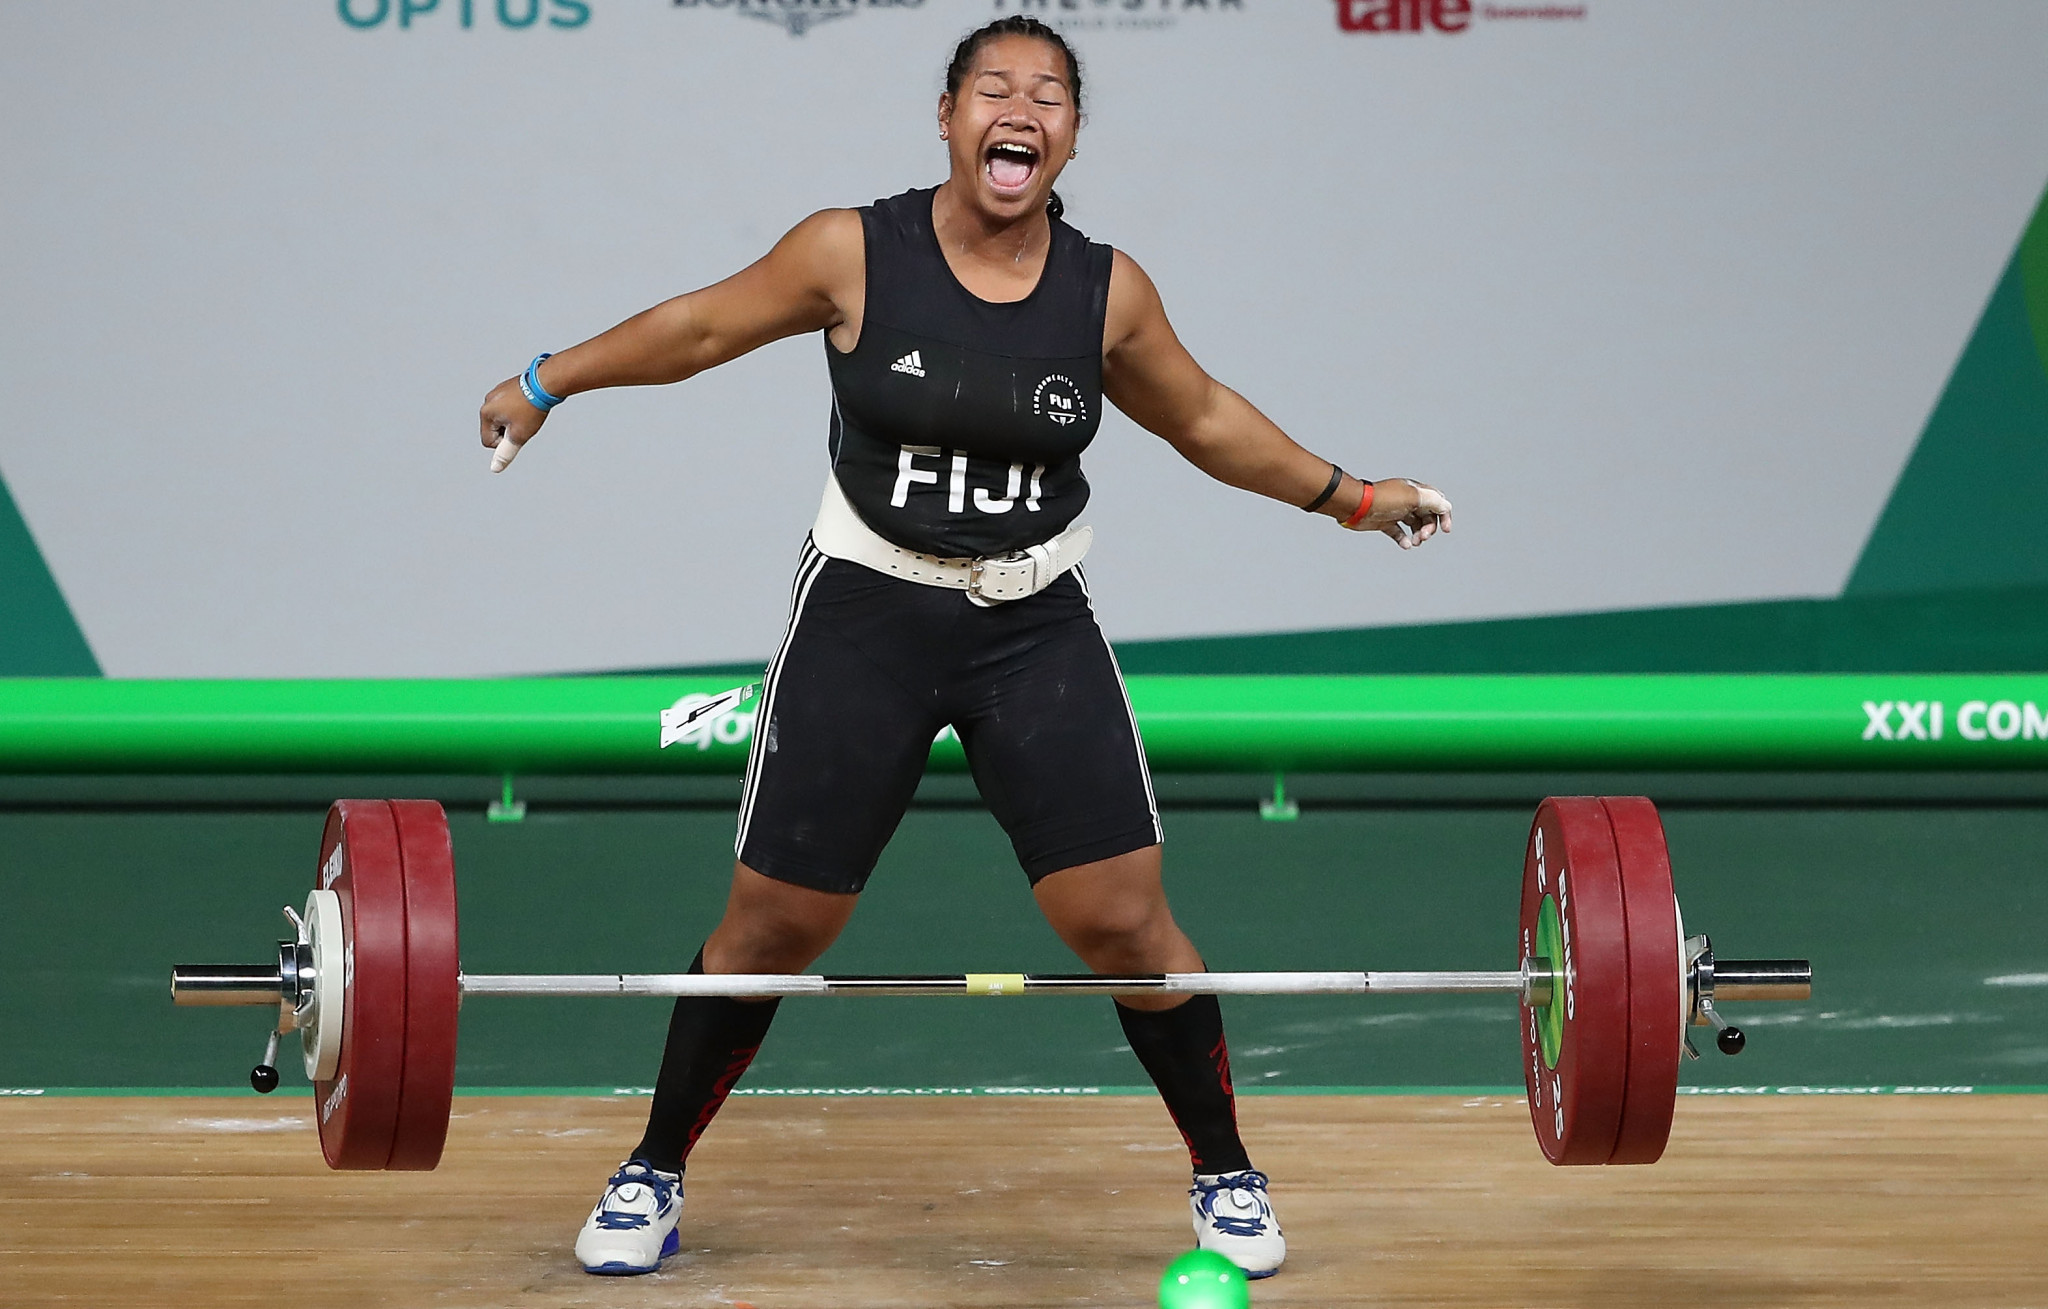 Eileen Cikamatana won Fiji's first Commonwealth Games gold since 1982 at the last edition on the Gold Coast in 2018 ©Getty Images